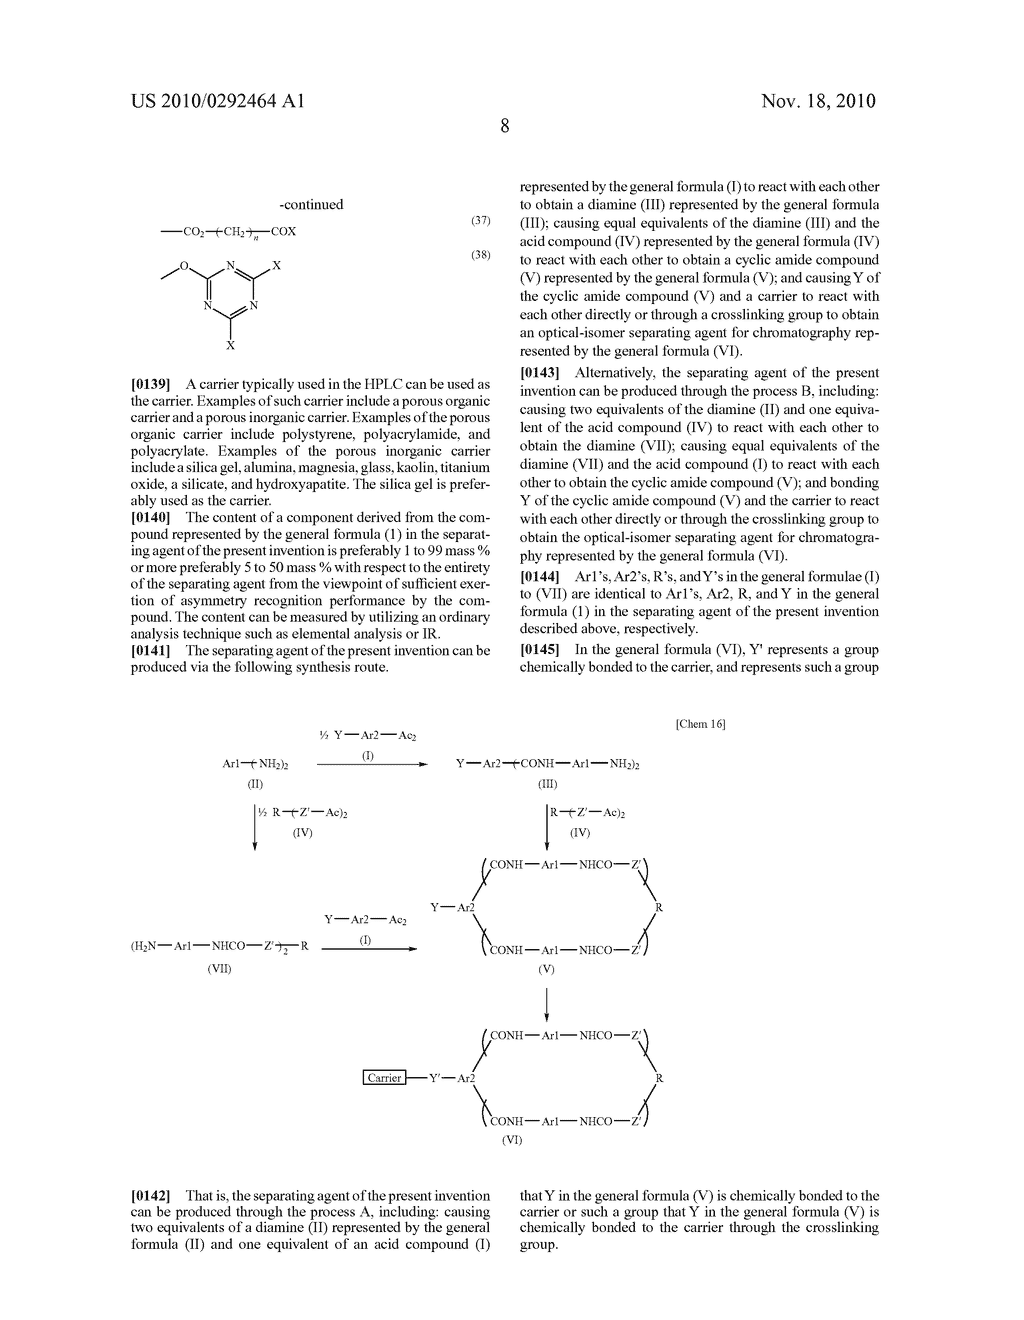 OPTICAL-ISOMER SEPARATING AGENT FOR CHROMATOGRAPHY AND PROCESS FOR PRODUCING THE SAME - diagram, schematic, and image 52